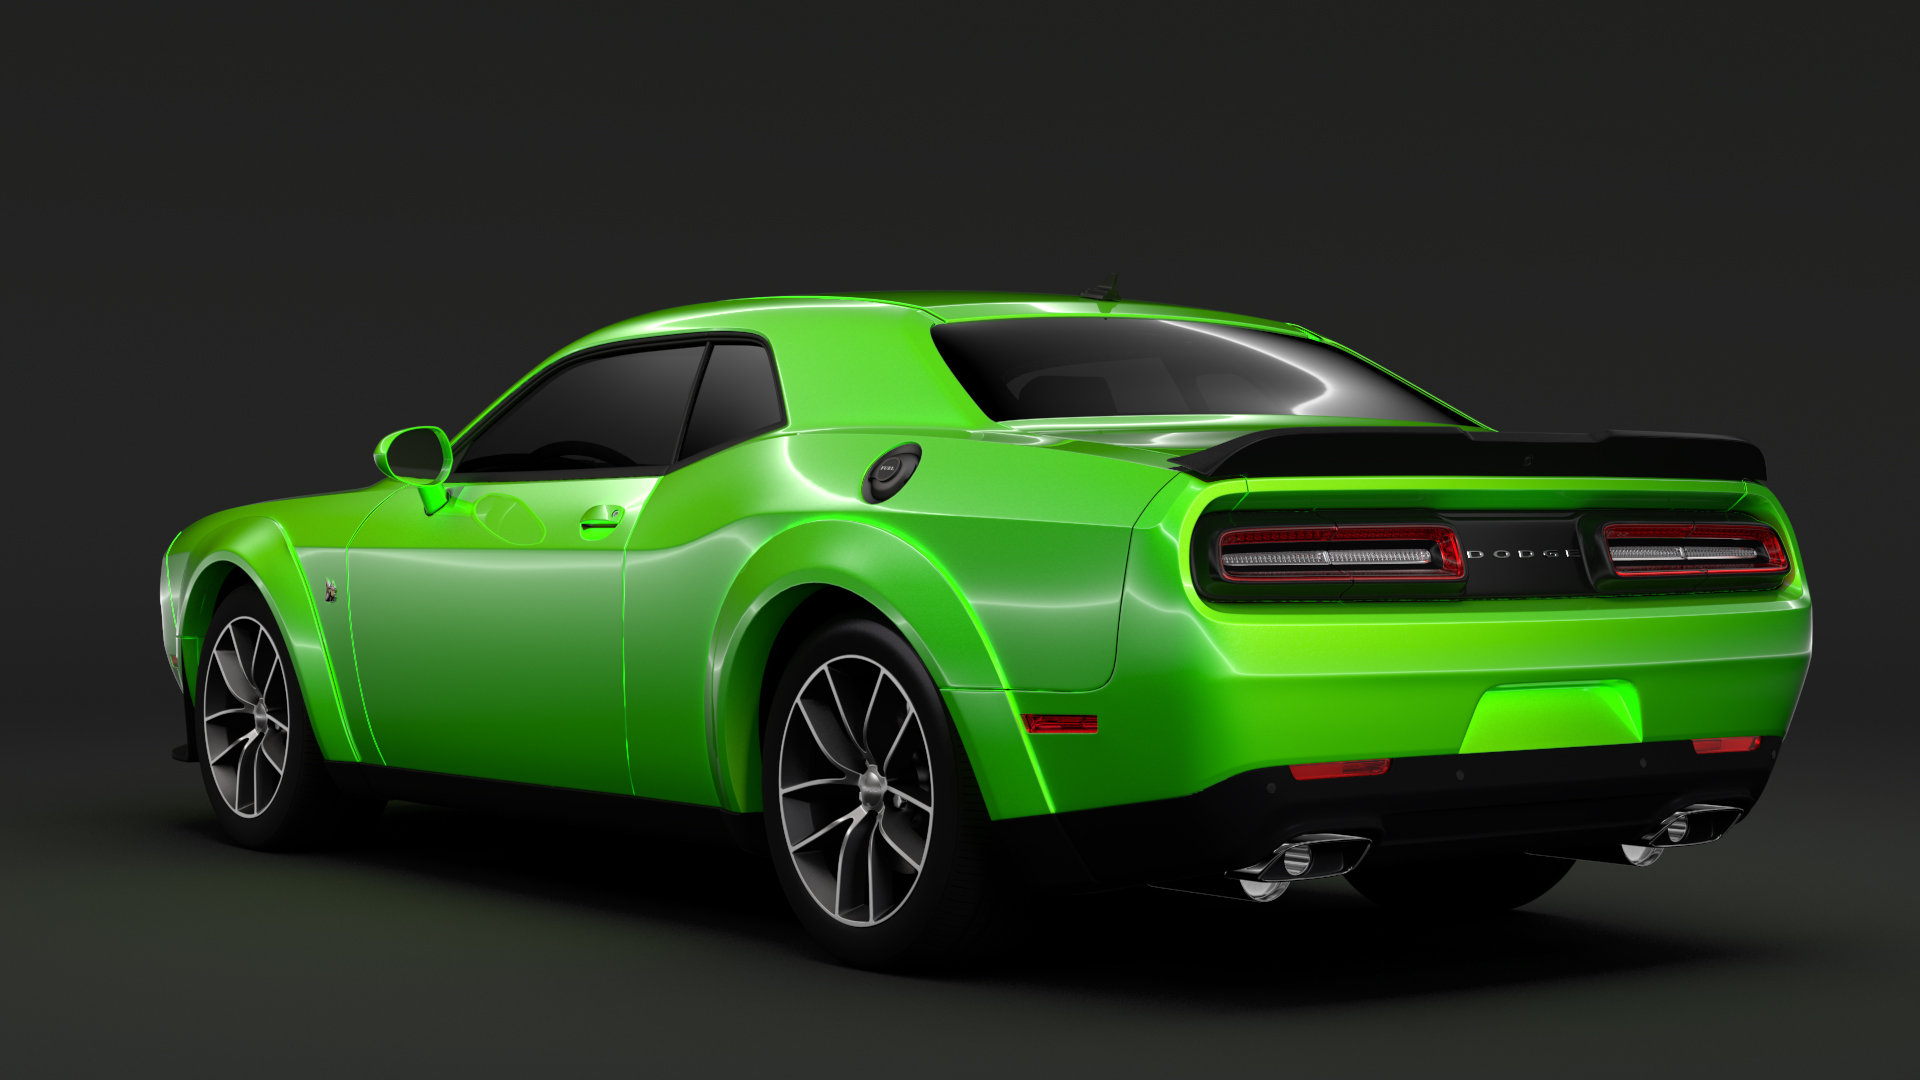 dodge challenger 392 hemi scat pack shaker widebod 3d model buy dodge challenger 392 hemi scat. Black Bedroom Furniture Sets. Home Design Ideas